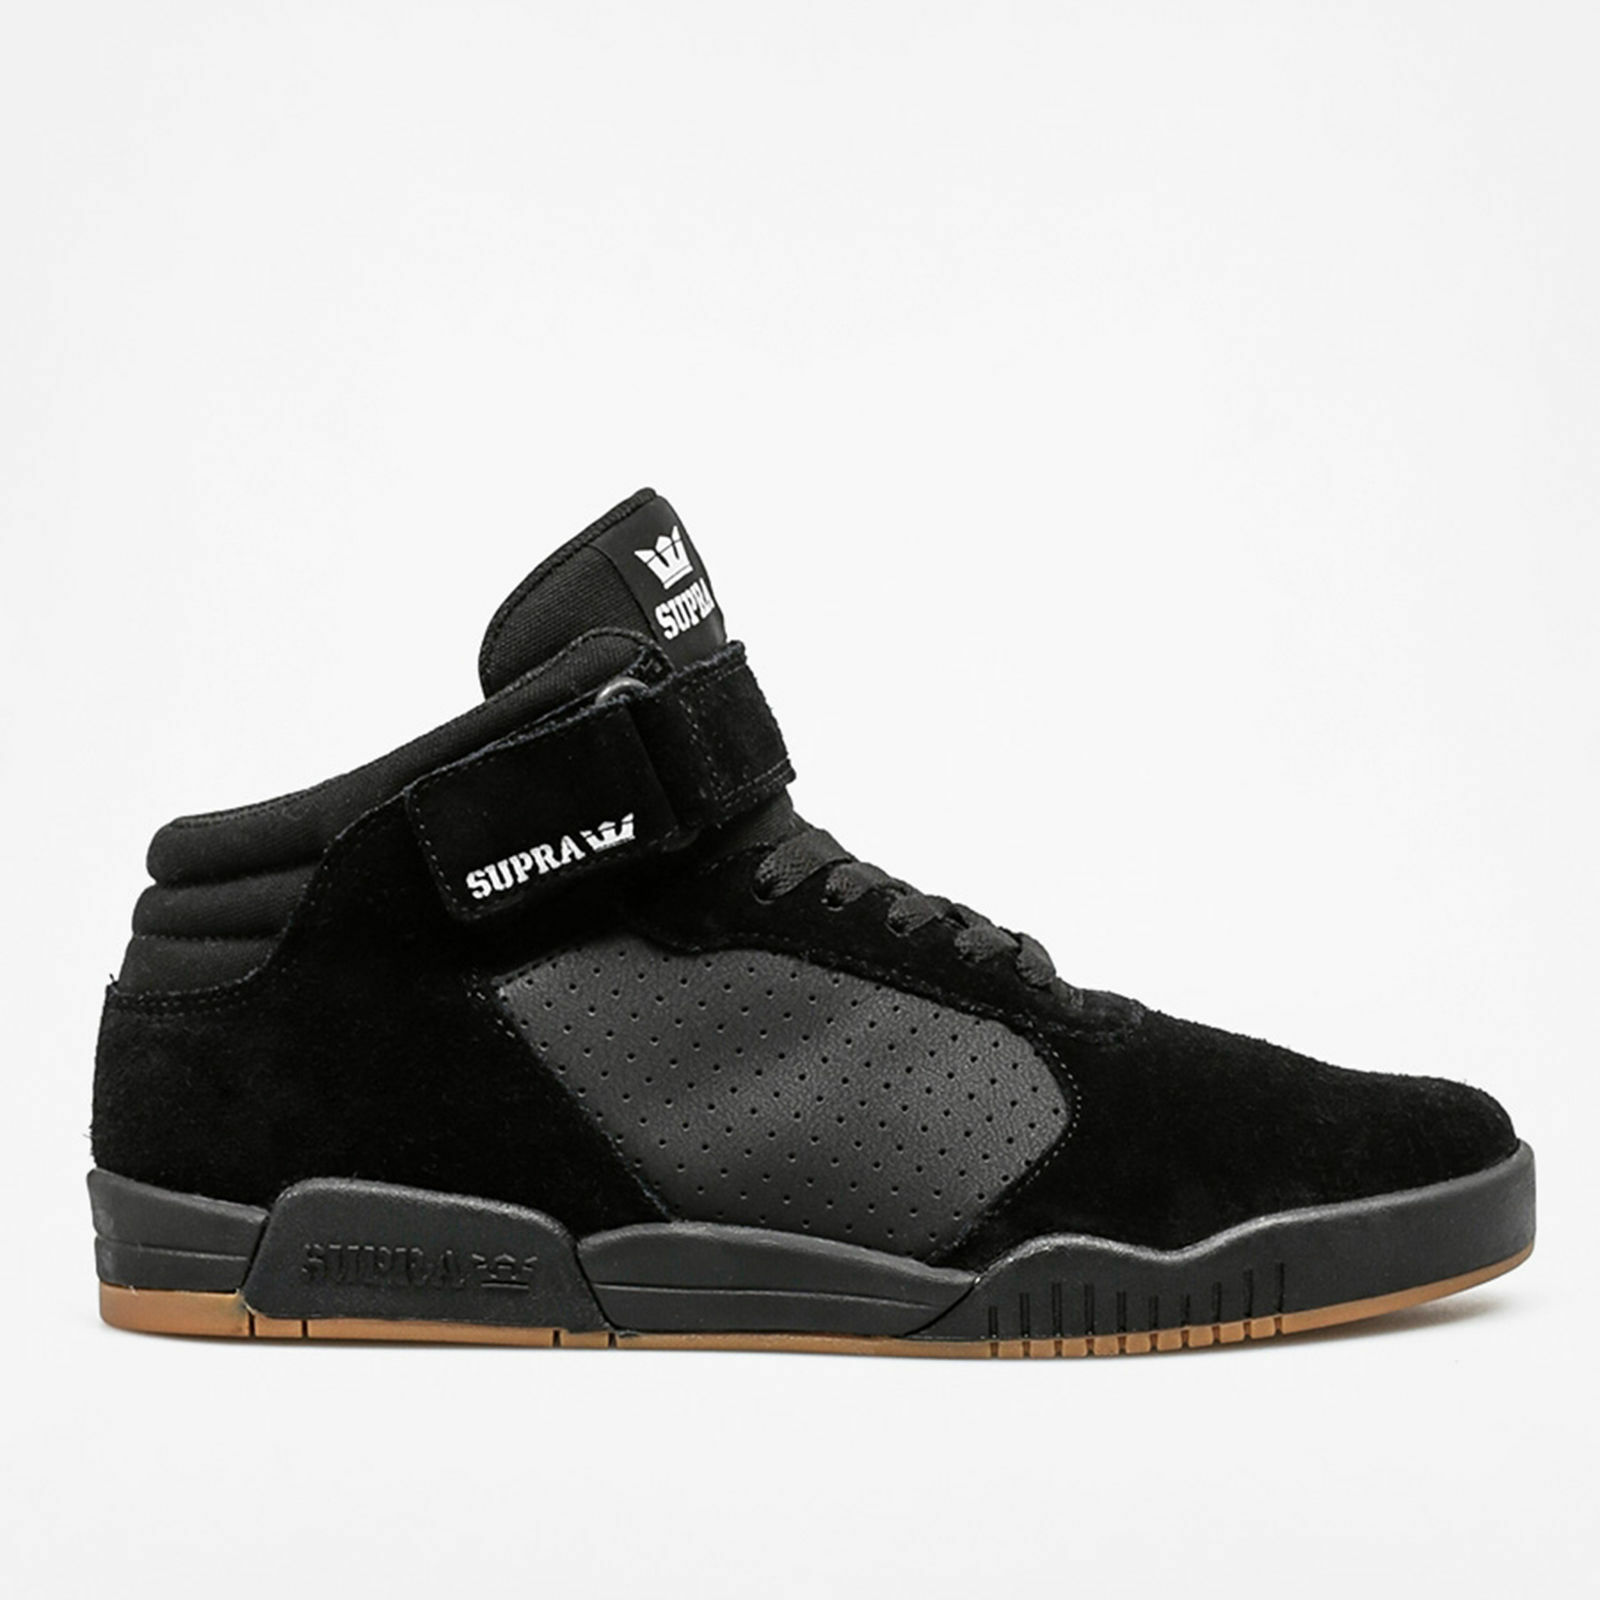 4384295fb5da Details about Supra Mens Ellington Strap Lace Up Active Gym Sport Lo Top  Black Gum Trainer